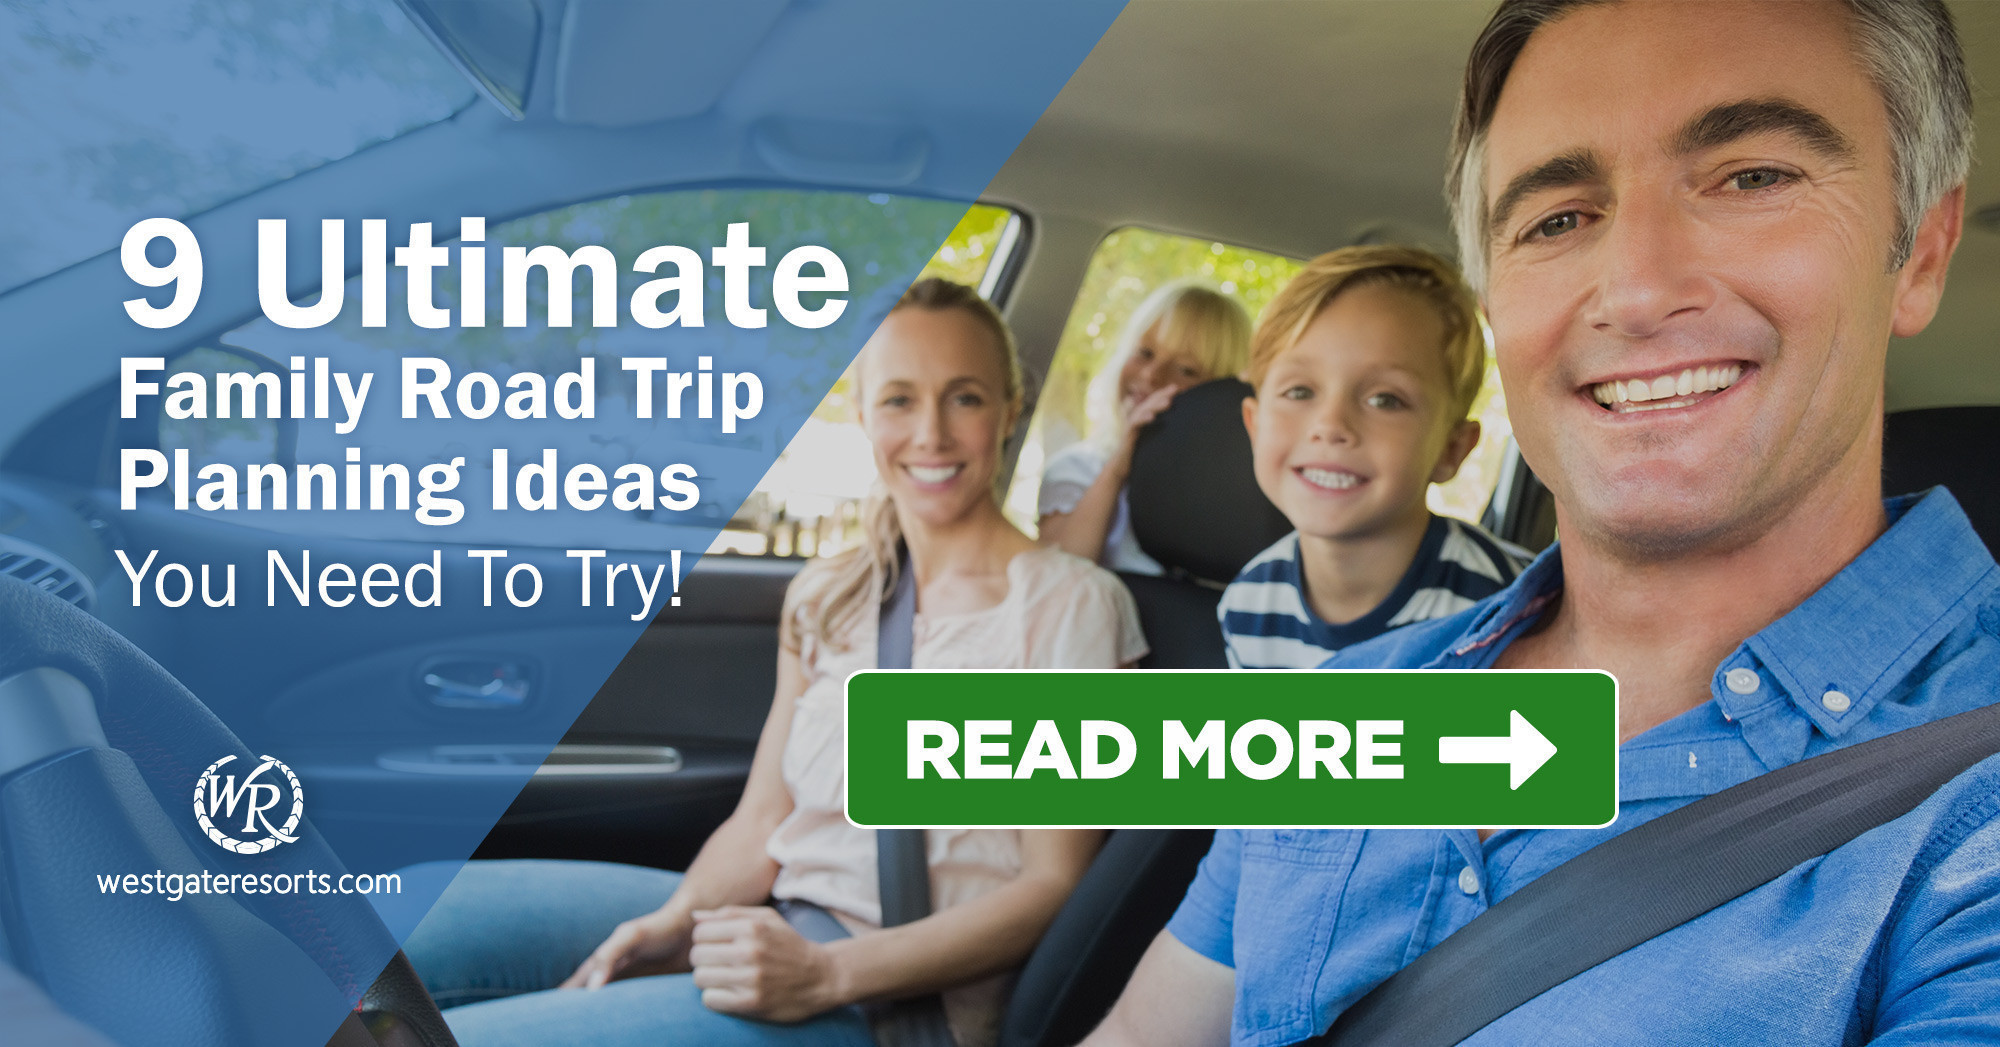 9 Ultimate Family Road Trip Ideas You Need To Try! | Best Family Road Trips | Westgate Resorts